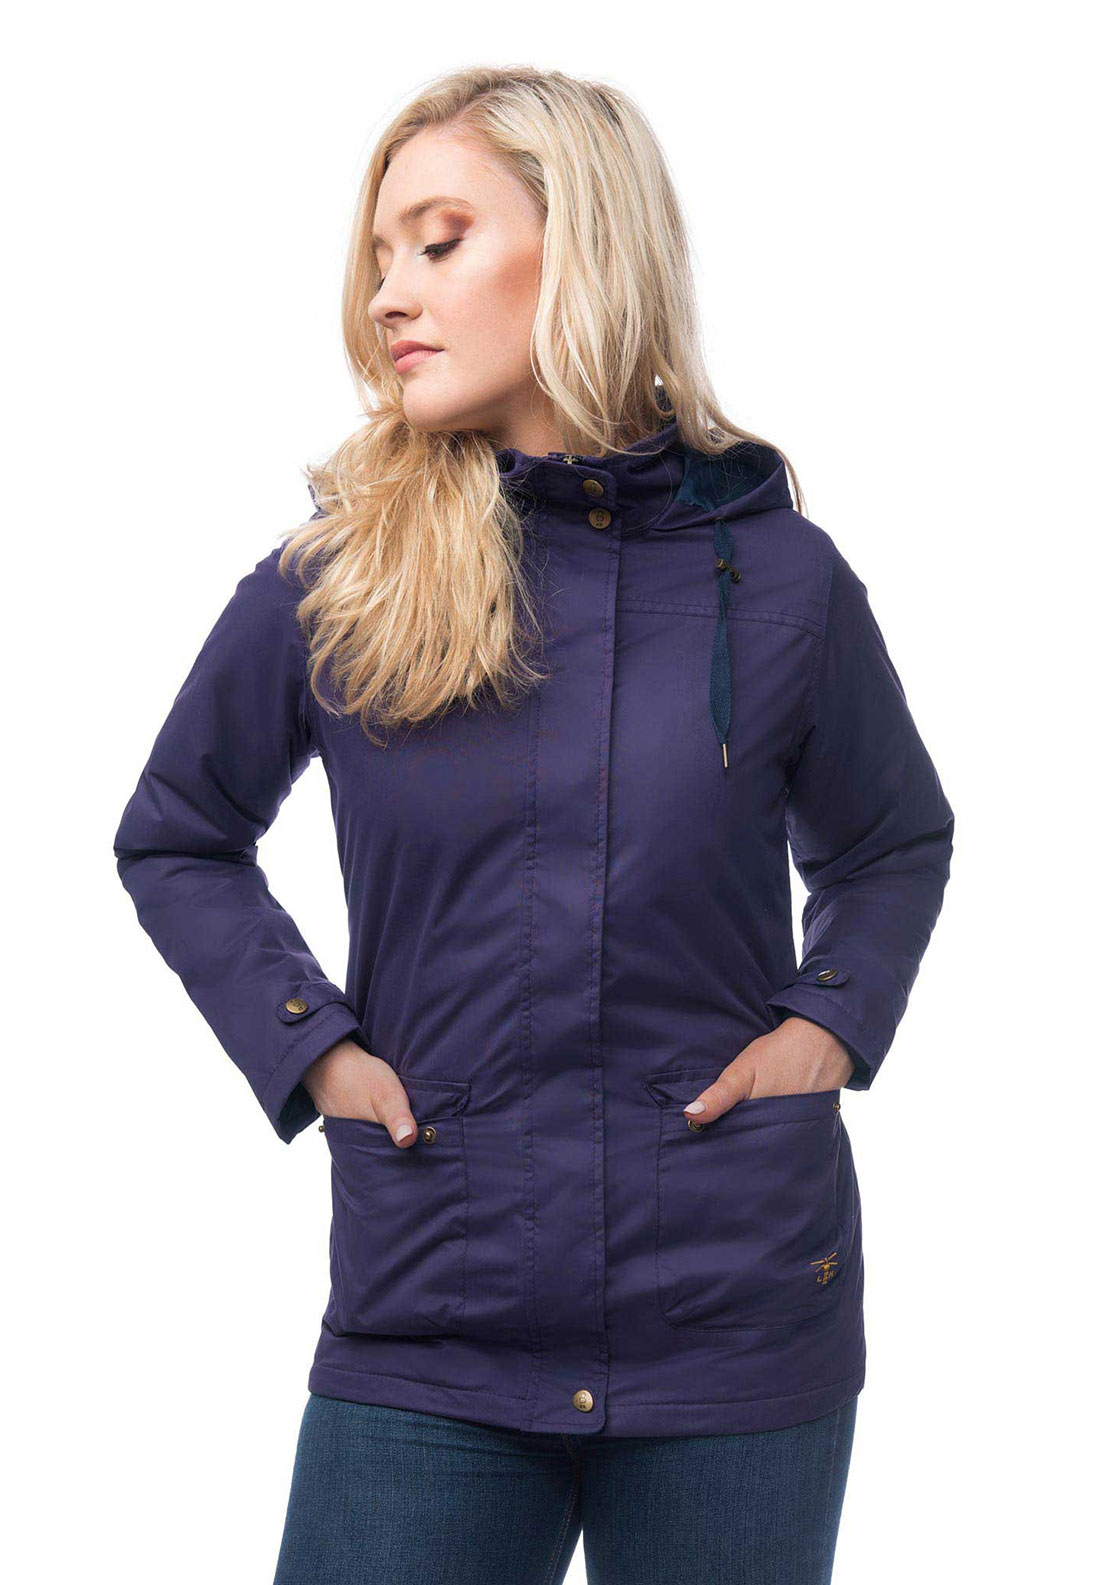 Lighthouse Alyssa Waterproof Hooded Jacket, Purple